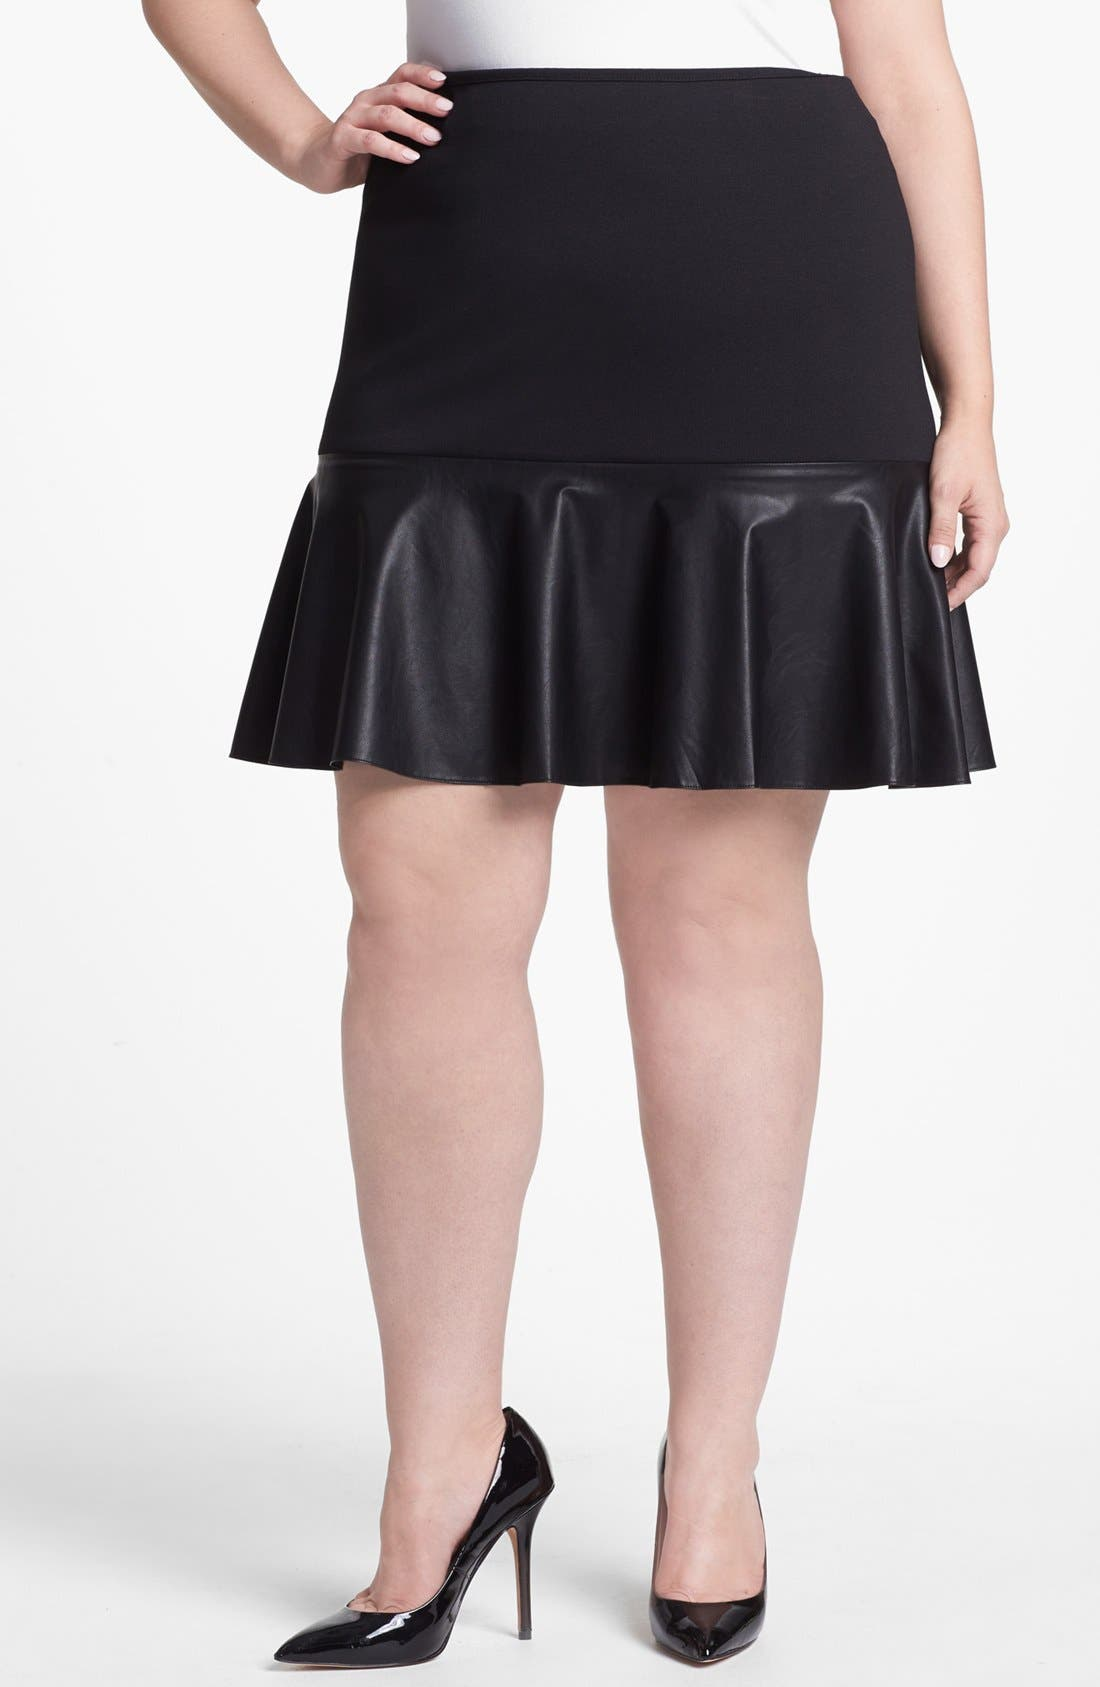 Alternate Image 1 Selected - Halogen® Faux Leather & Ponte Knit Skirt (Plus Size)